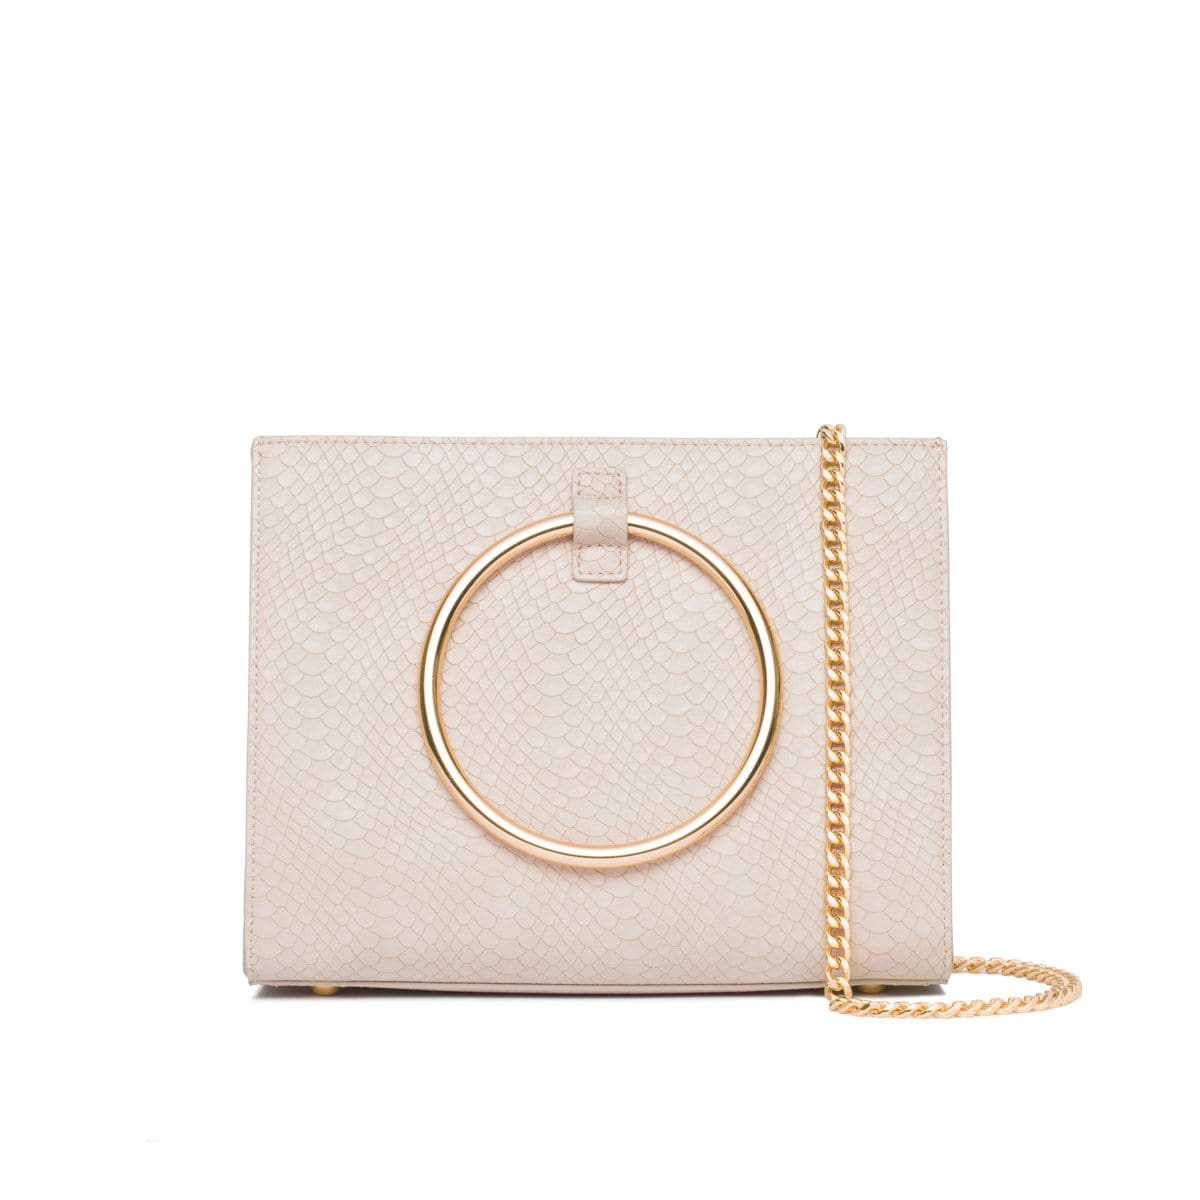 Moda Top Handle Bag (Ivory White/Yellow Gold)